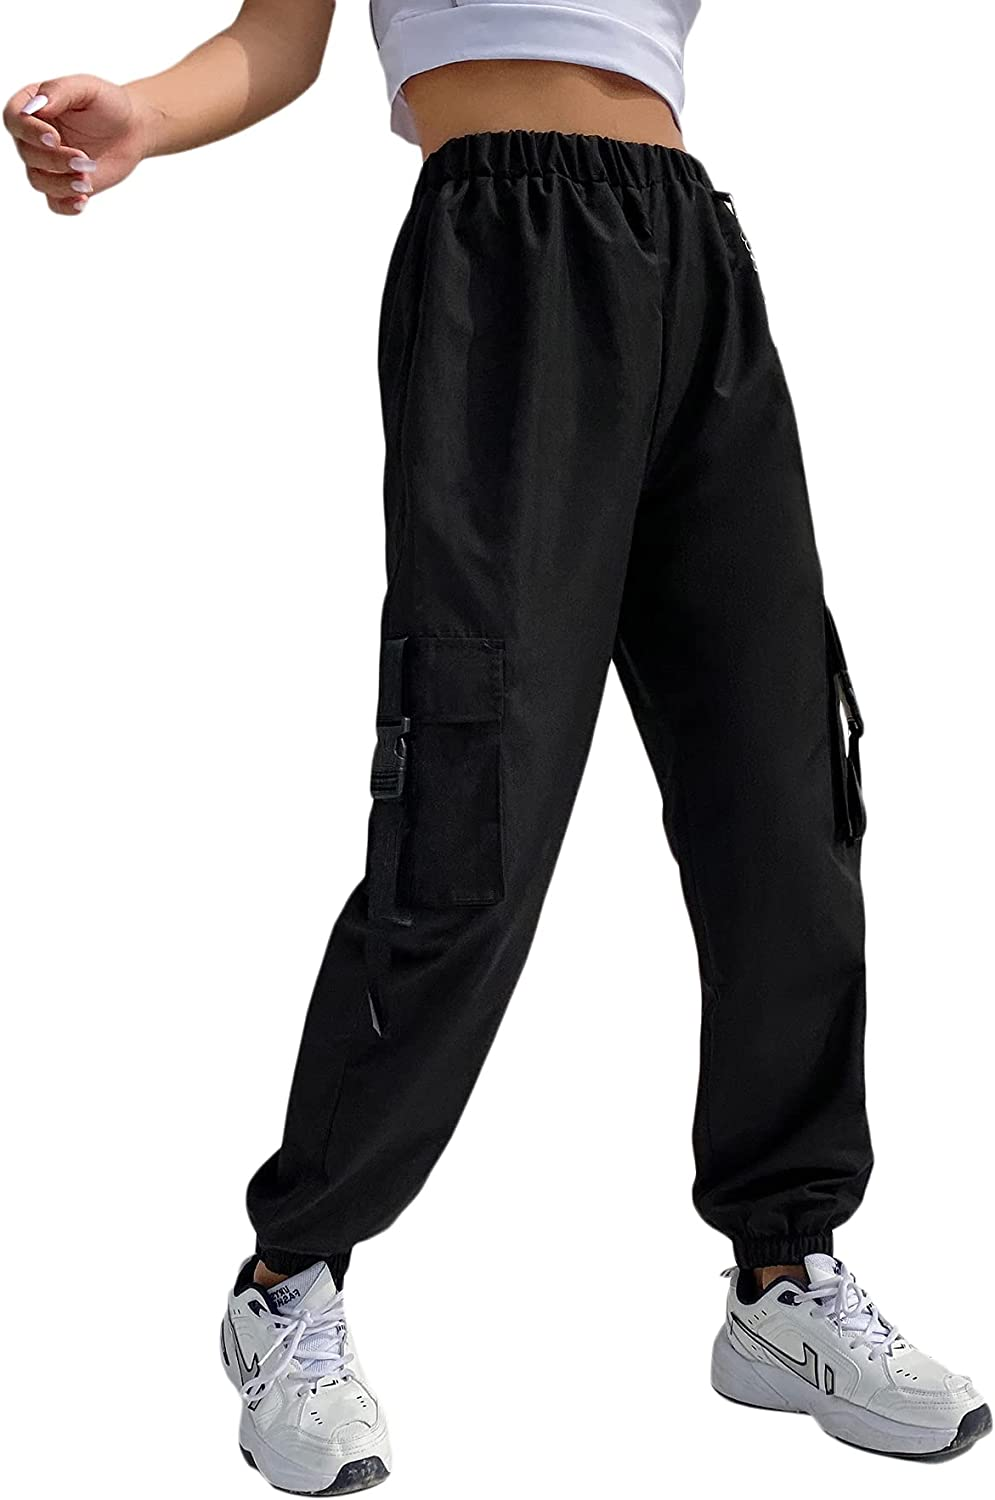 Floerns Women's Casual High Waisted Jogger Workout Cargo Pants with Pocket